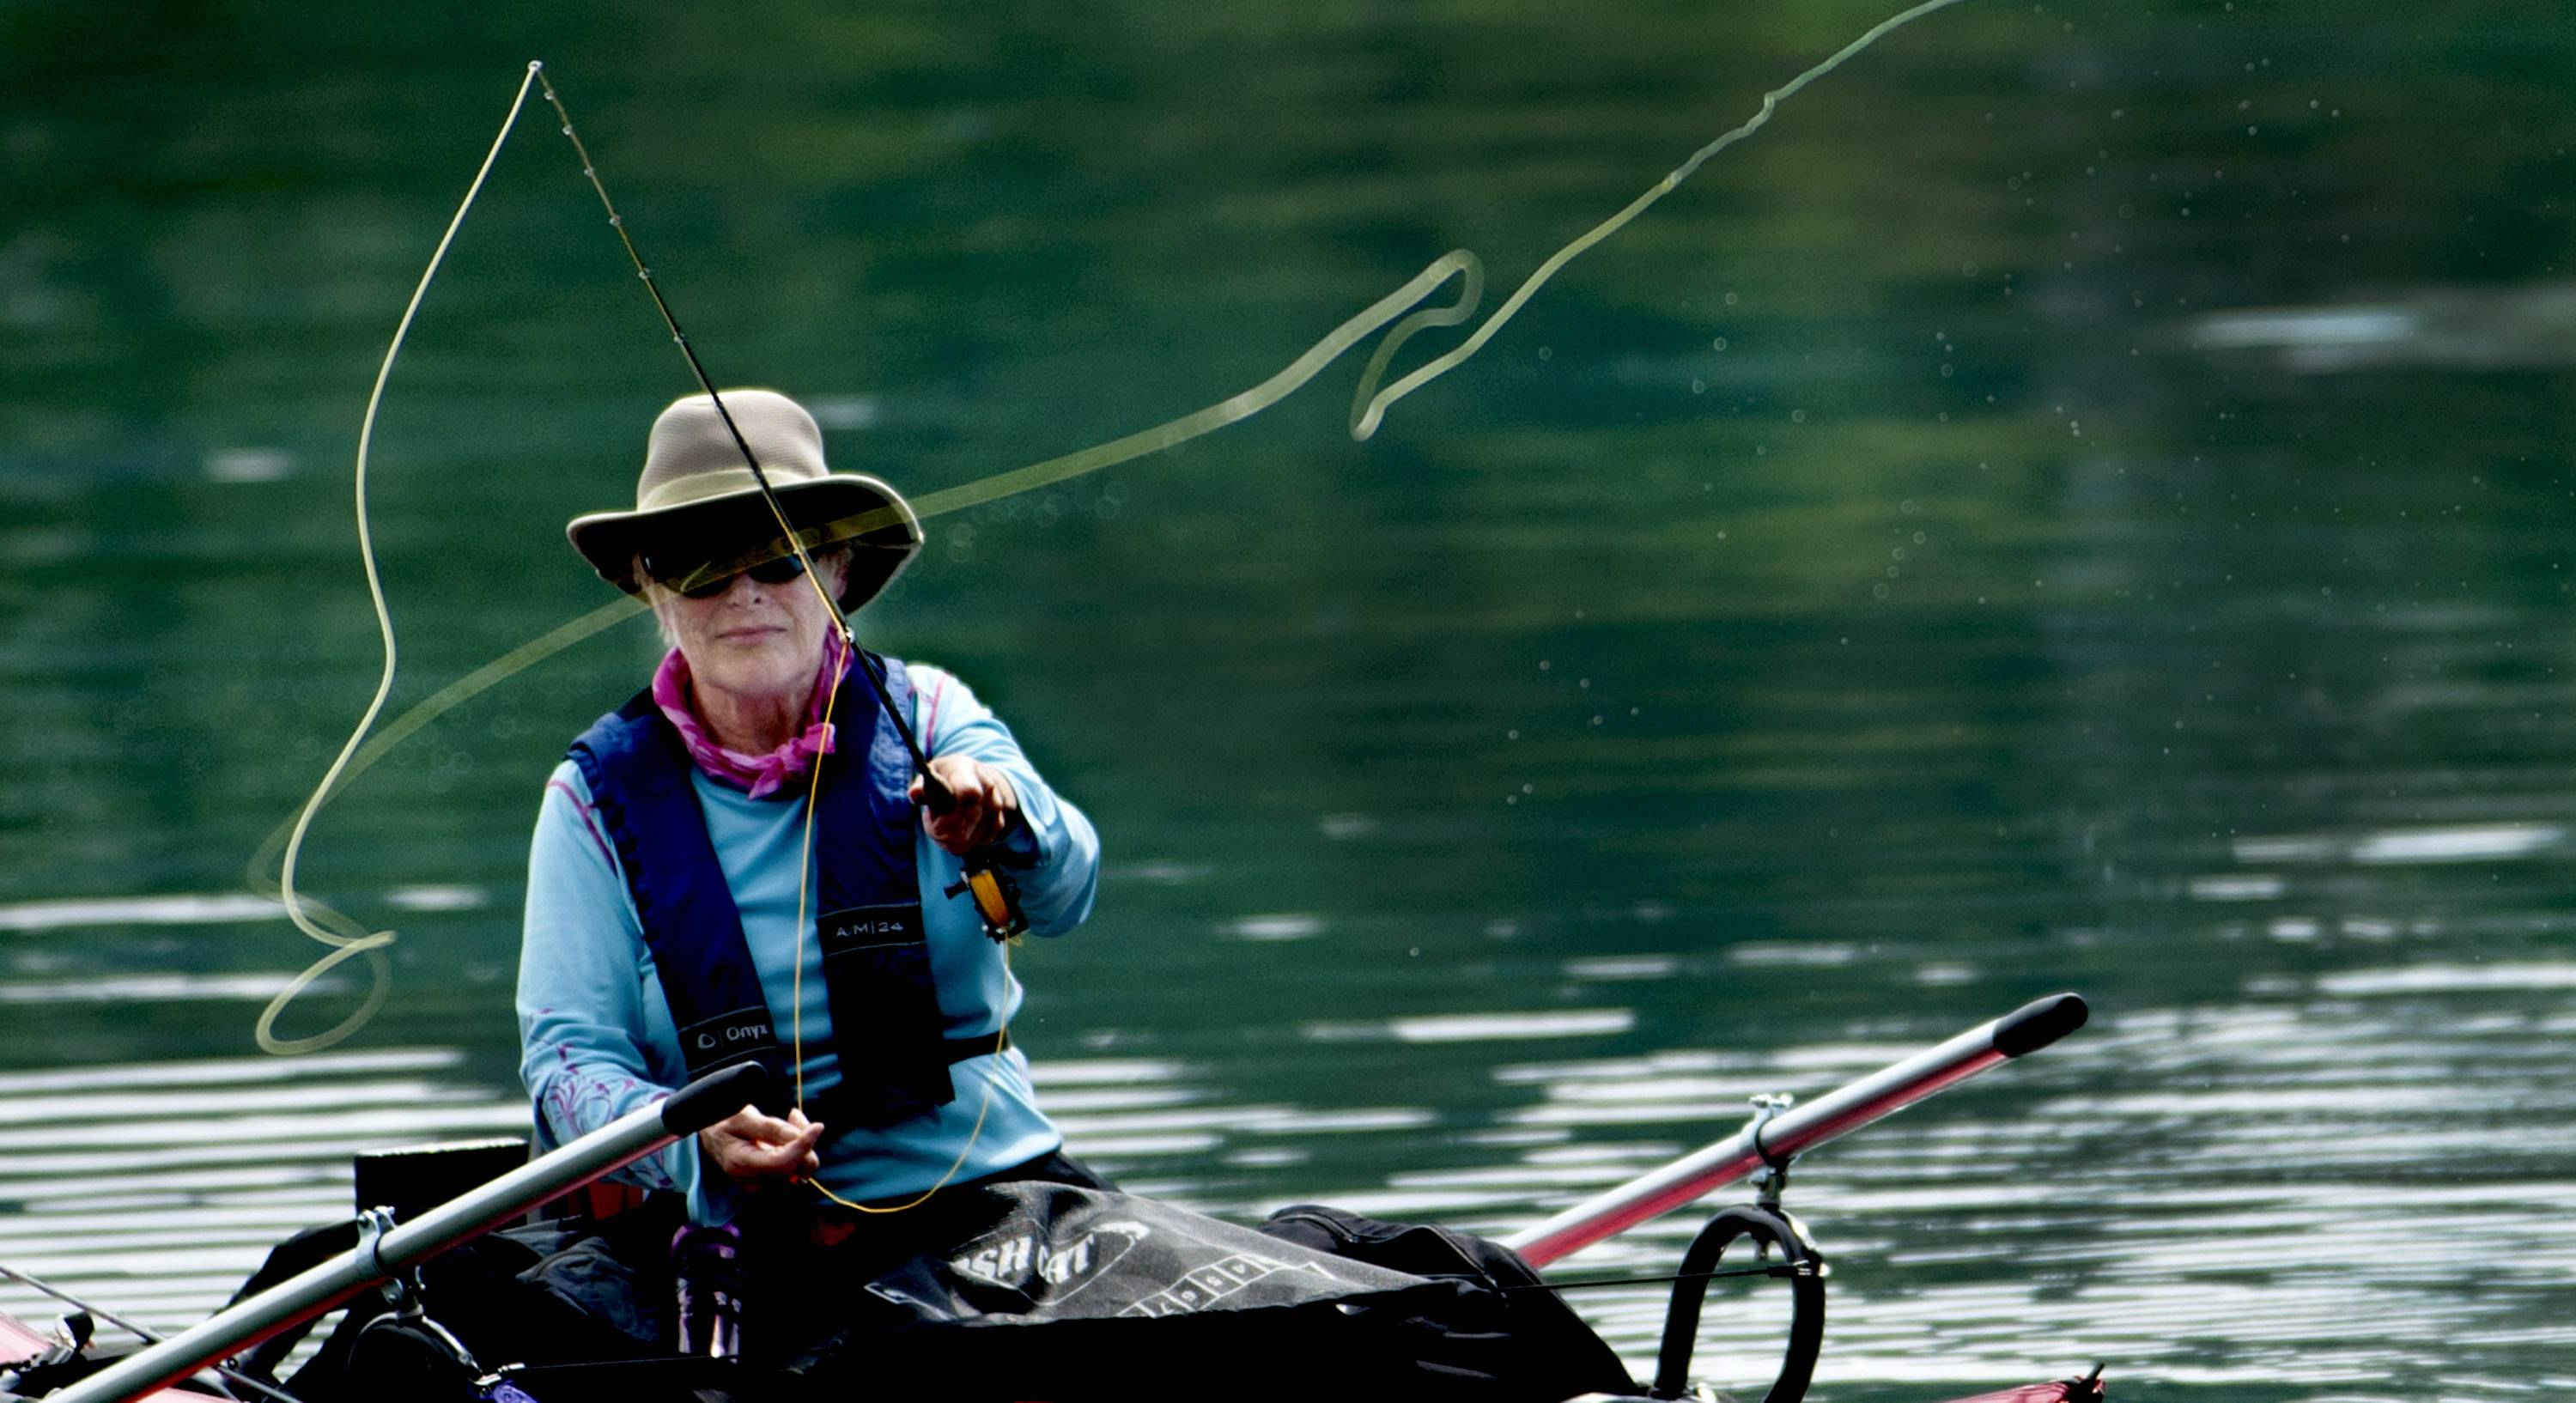 Joanie Dwyer of Coeur d'Alene, Idaho fly-fishes Monday from her pontoon on Hayden Lake in Hayden, Idaho.